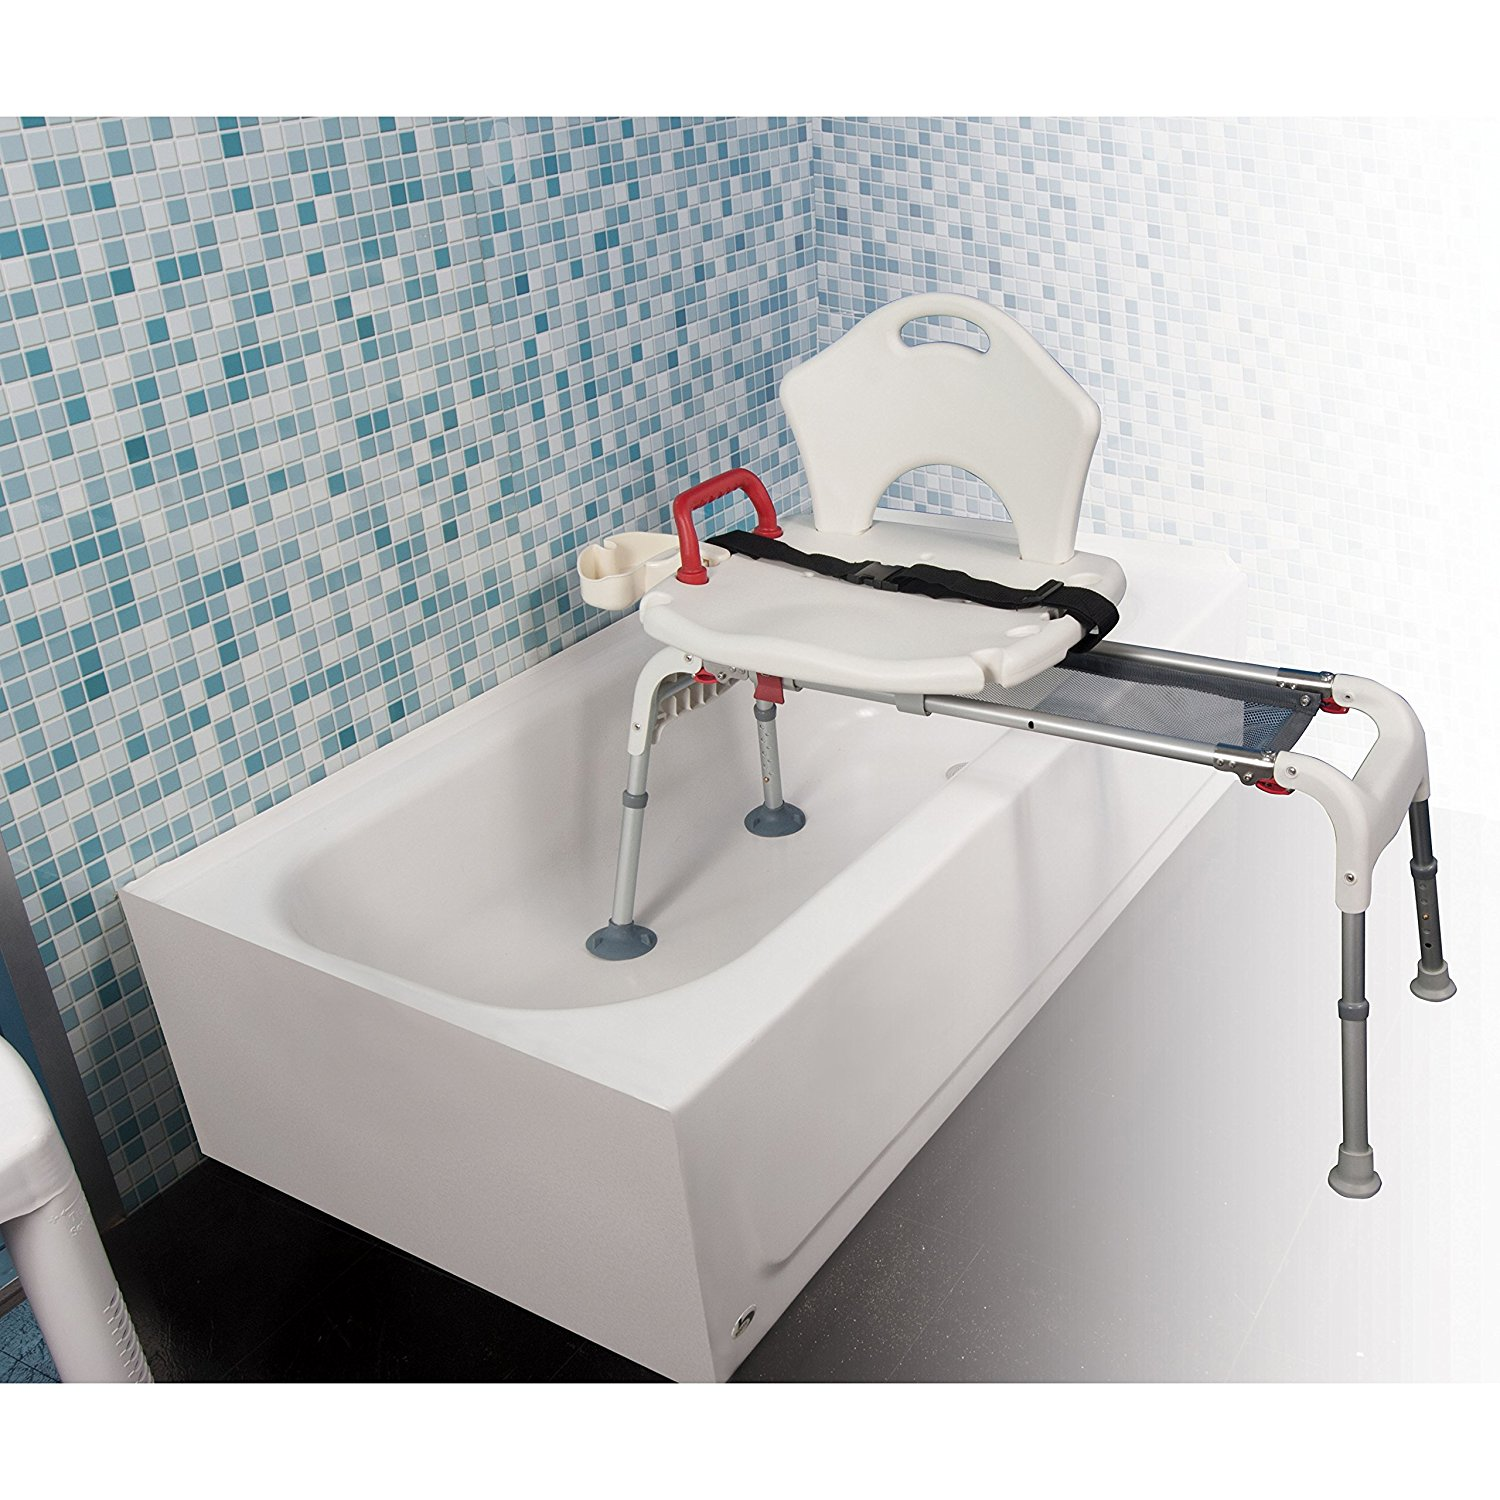 Transfer Tub Bench | Transfer Tub Bench | Transfer Chair for Bathtub